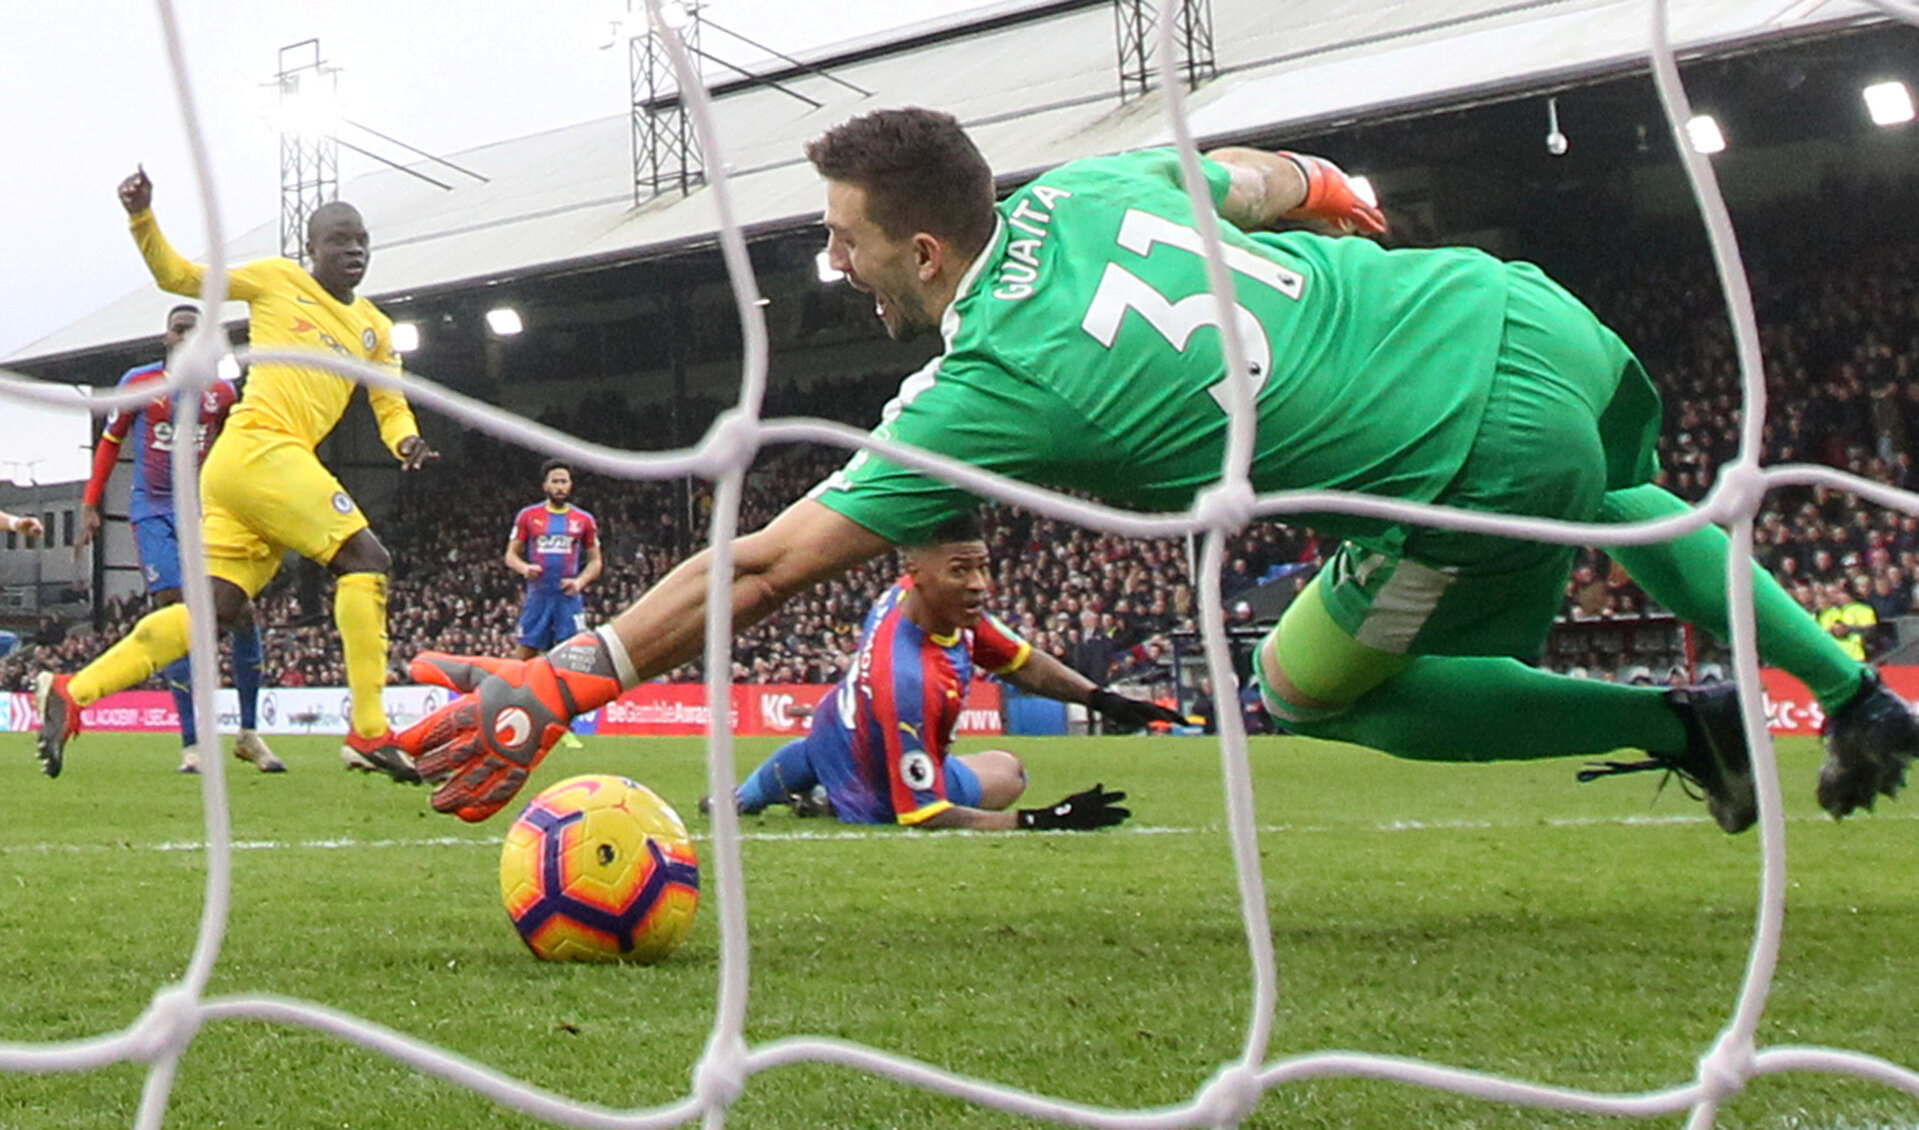 """Soccer Football - Premier League - Crystal Palace v Chelsea - Selhurst Park, London, Britain - December 30, 2018  Chelsea's N'Golo Kante scores their first goal past Crystal Palace's Vicente Guaita    REUTERS/David Klein  EDITORIAL USE ONLY. No use with unauthorized audio, video, data, fixture lists, club/league logos or """"live"""" services. Online in-match use limited to 75 images, no video emulation. No use in betting, games or single club/league/player publications.  Please contact your account representative for further details.     TPX IMAGES OF THE DAY"""